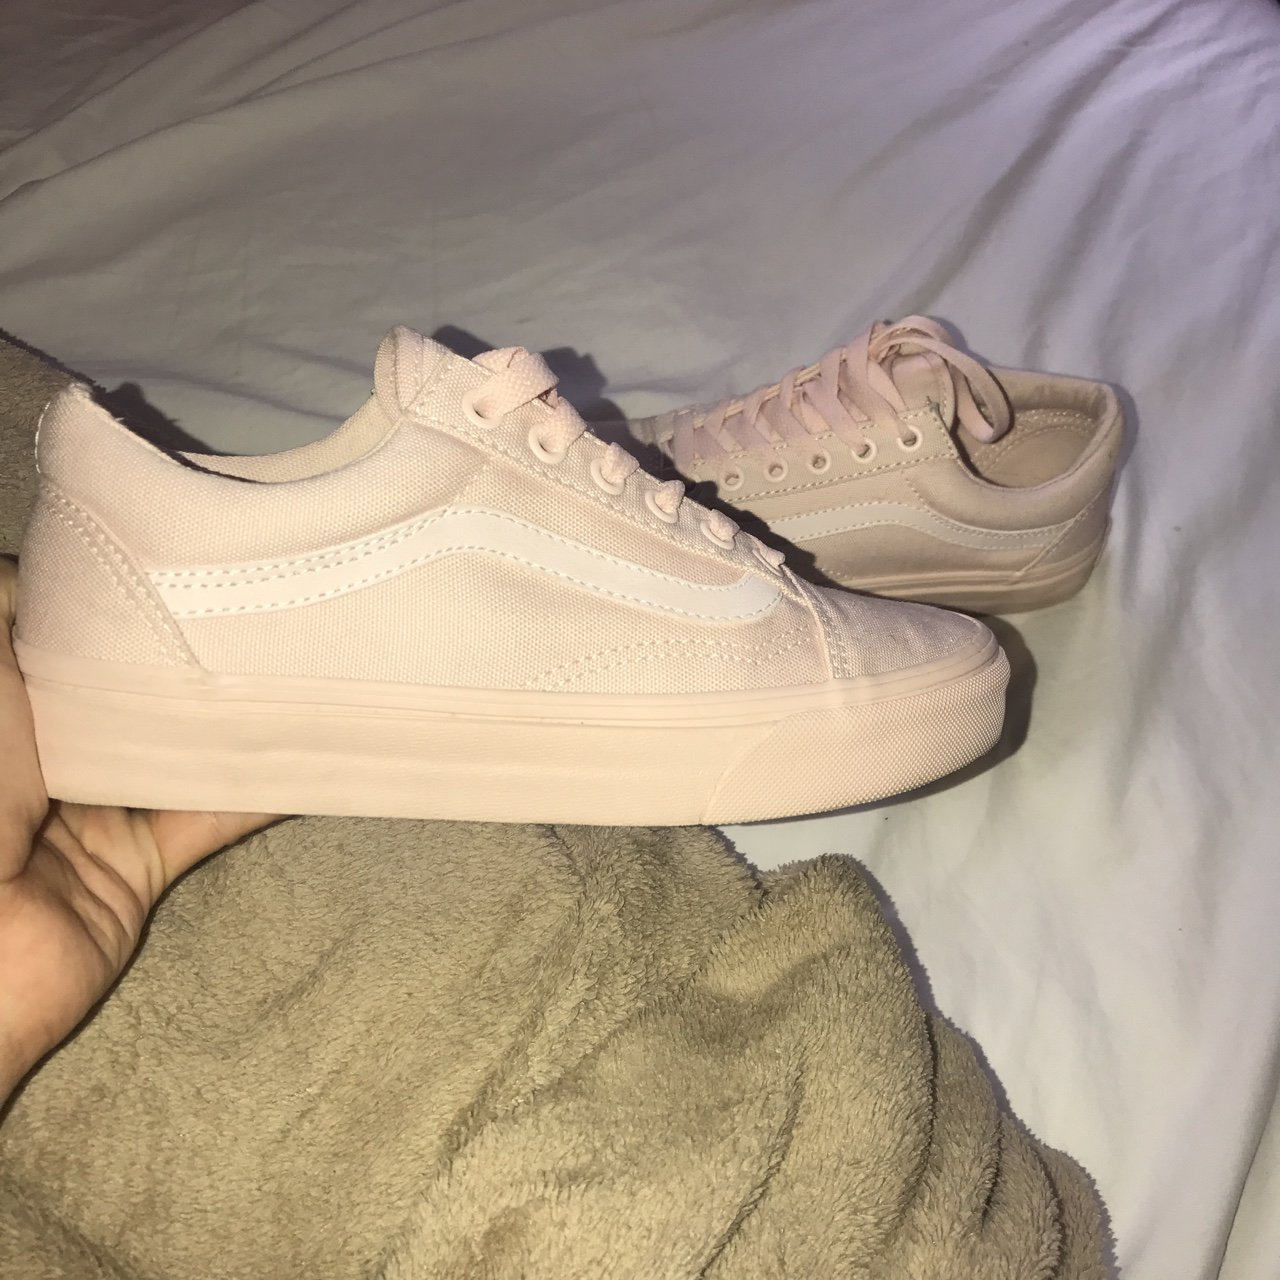 72e7a92911f767 On hold Mono canvas old school vans Peach blush Worn once - Depop